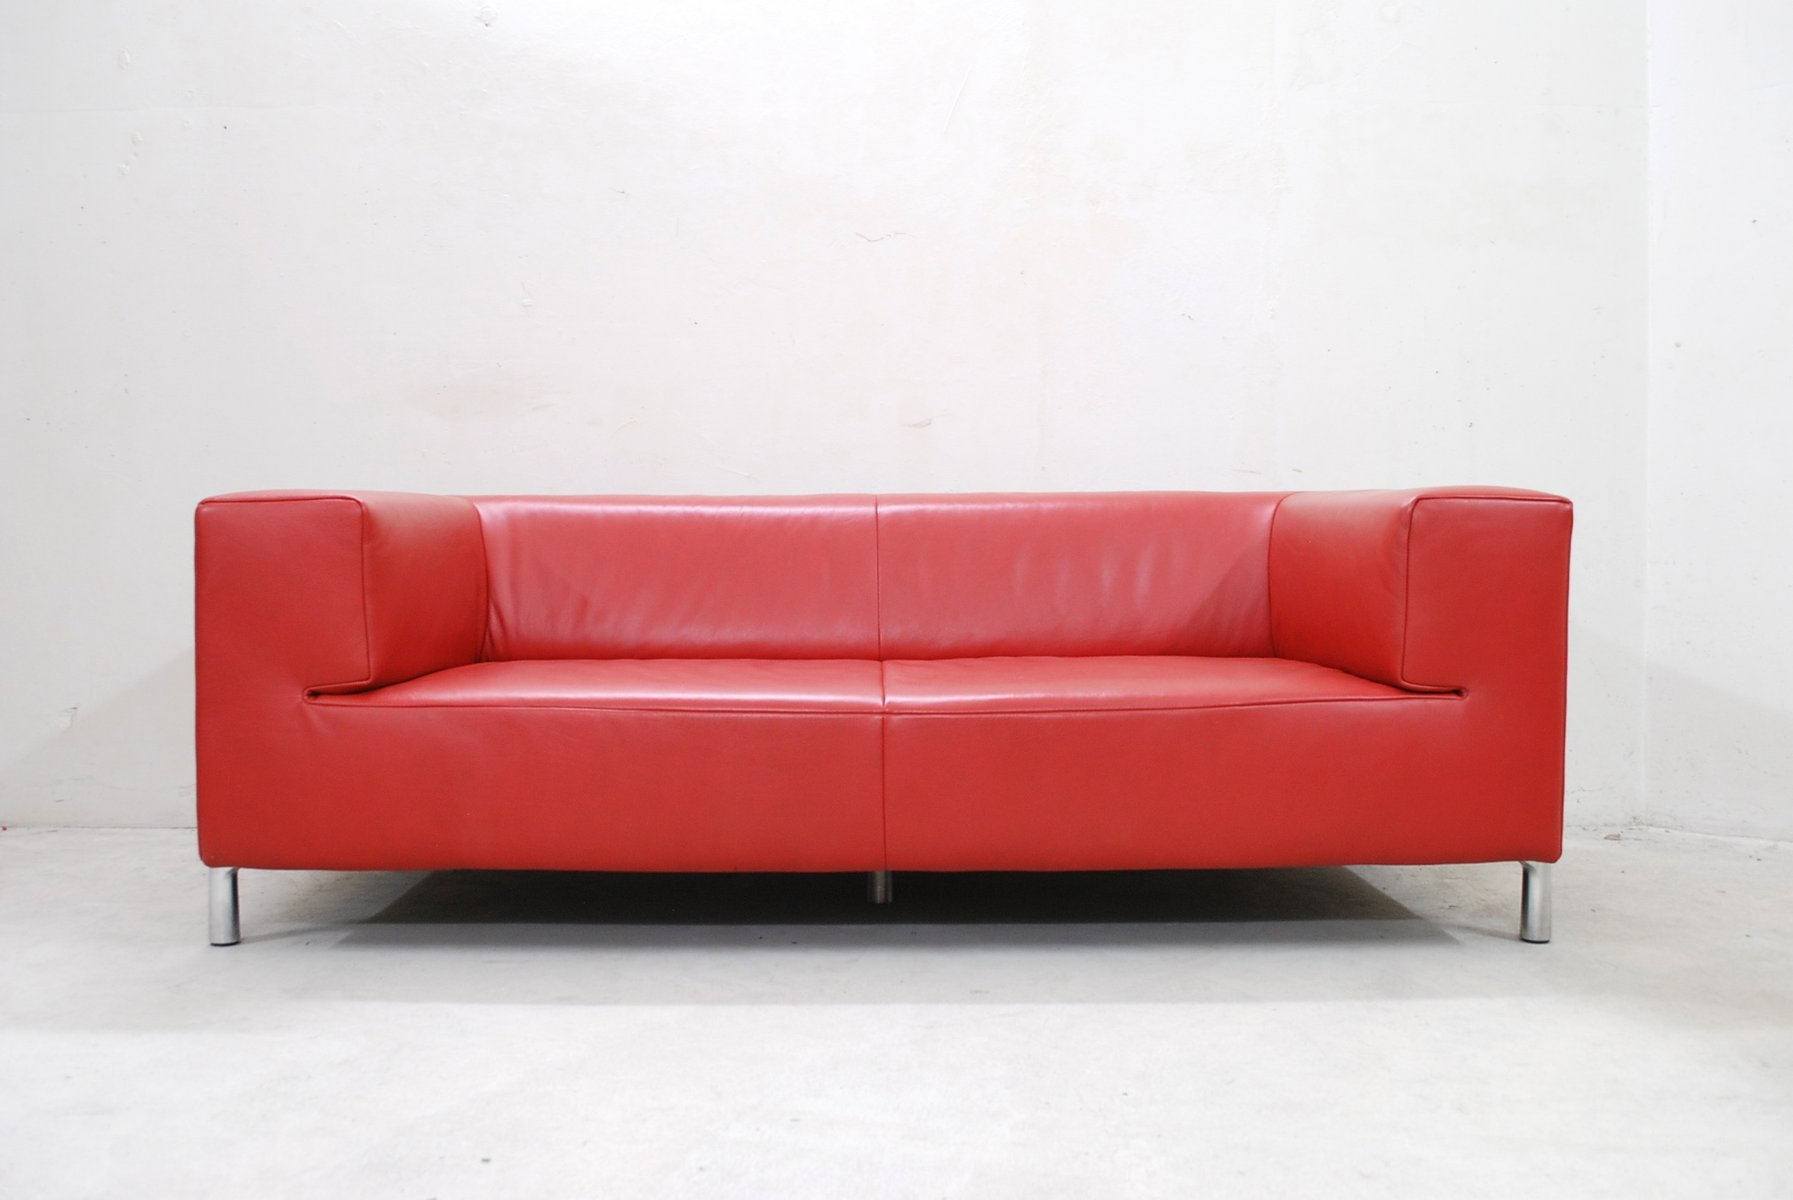 vintage red leather genesis sofa from koinor for sale at pamono. Black Bedroom Furniture Sets. Home Design Ideas